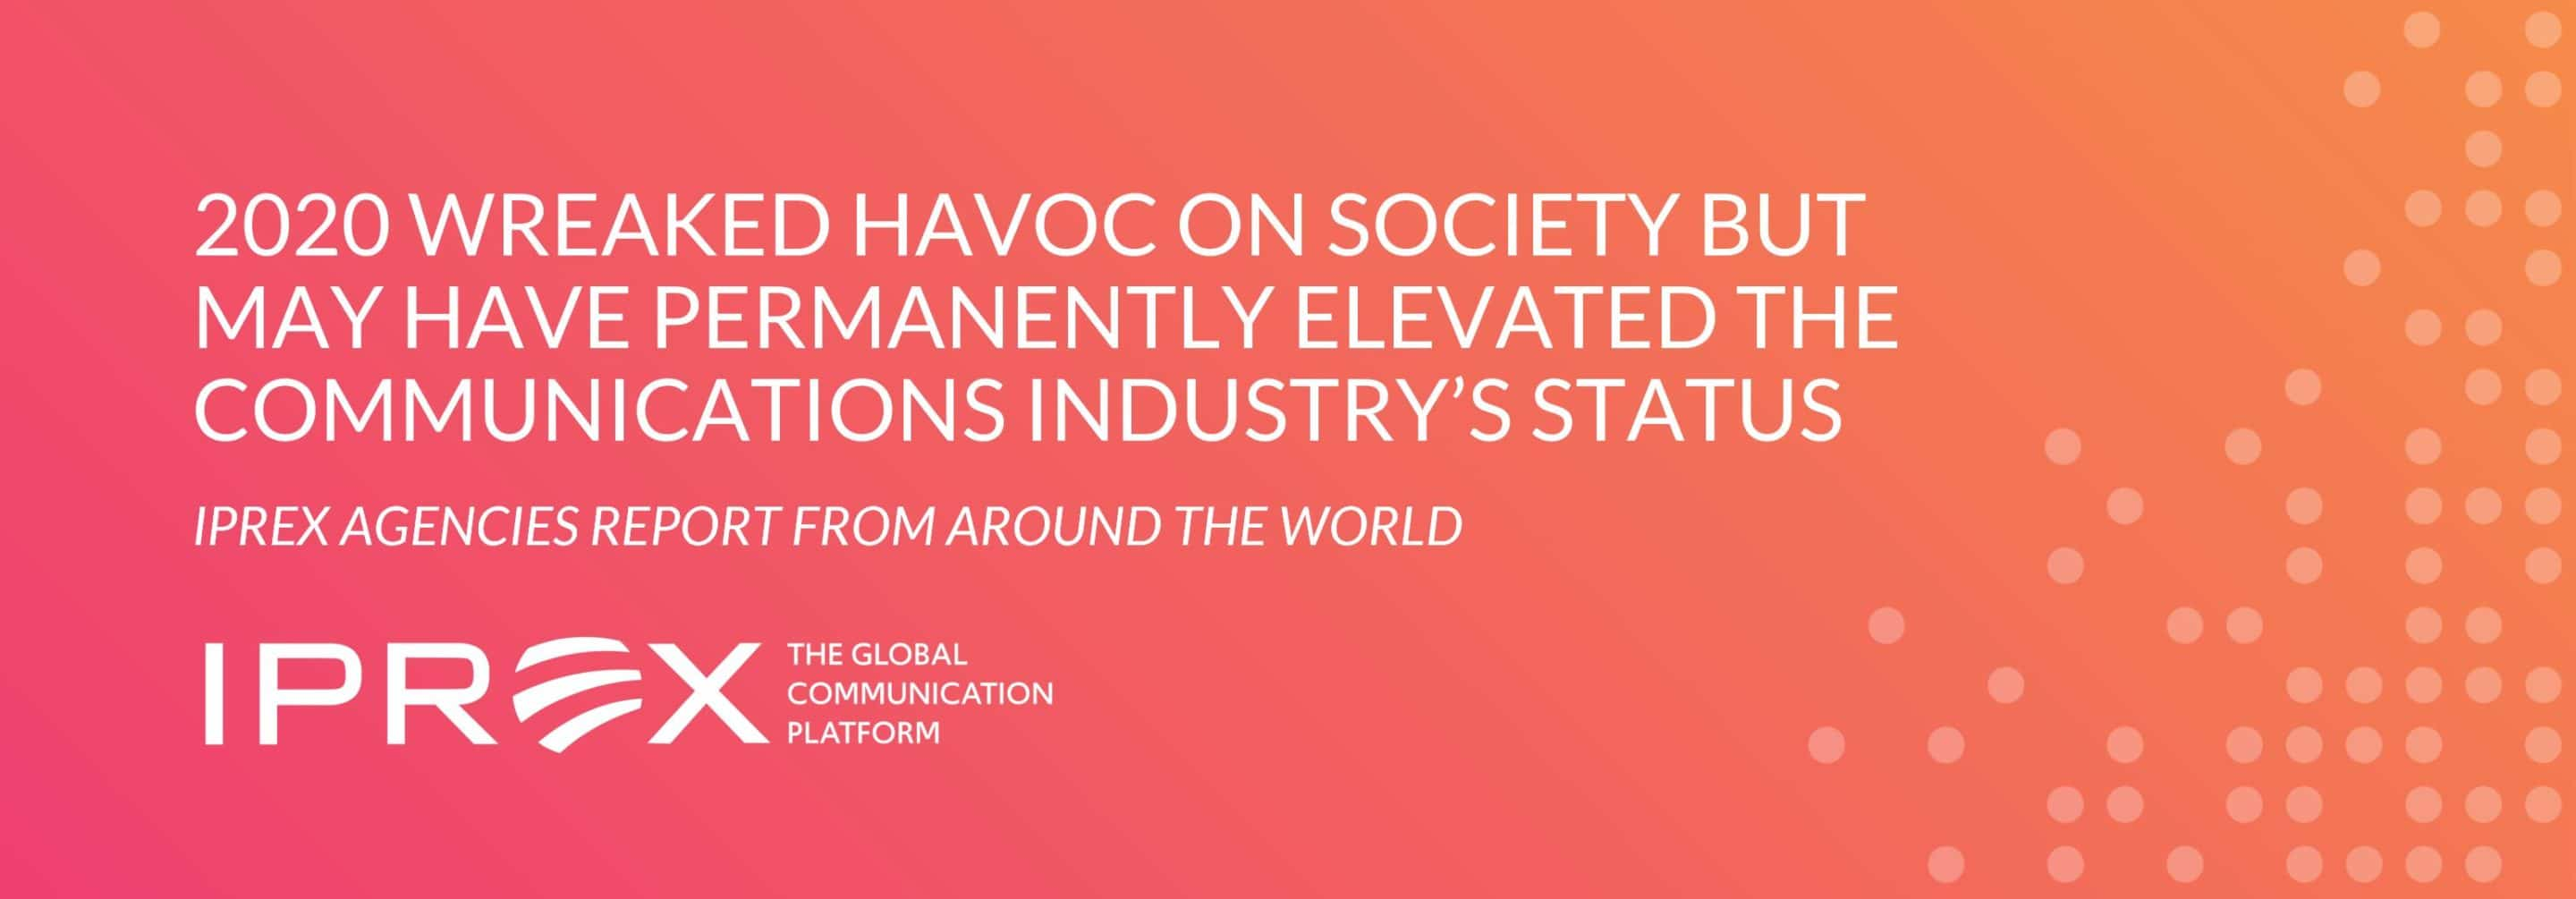 Despite COVID's societal havoc, it may have permanently elevated the comms industry